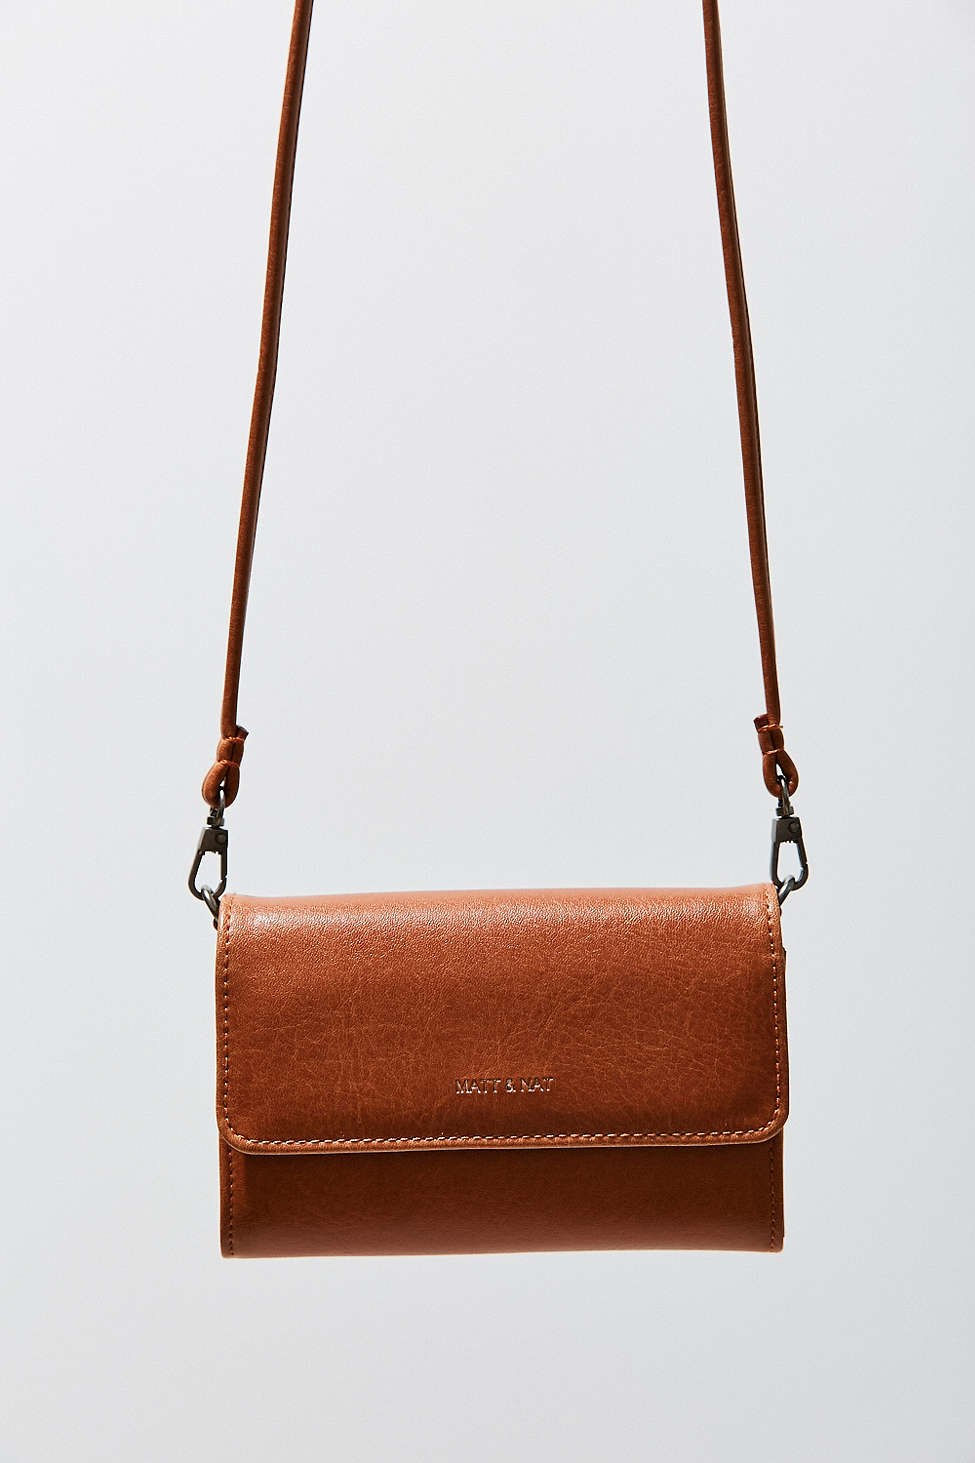 [For evigt 21 Mini Crossbody Bag, $19.90, [forever21.com](http://www.forever21.com/Product/Product.aspx?BR=f21&Category=acc_handbags&ProductID=1000182863&VariantID=)